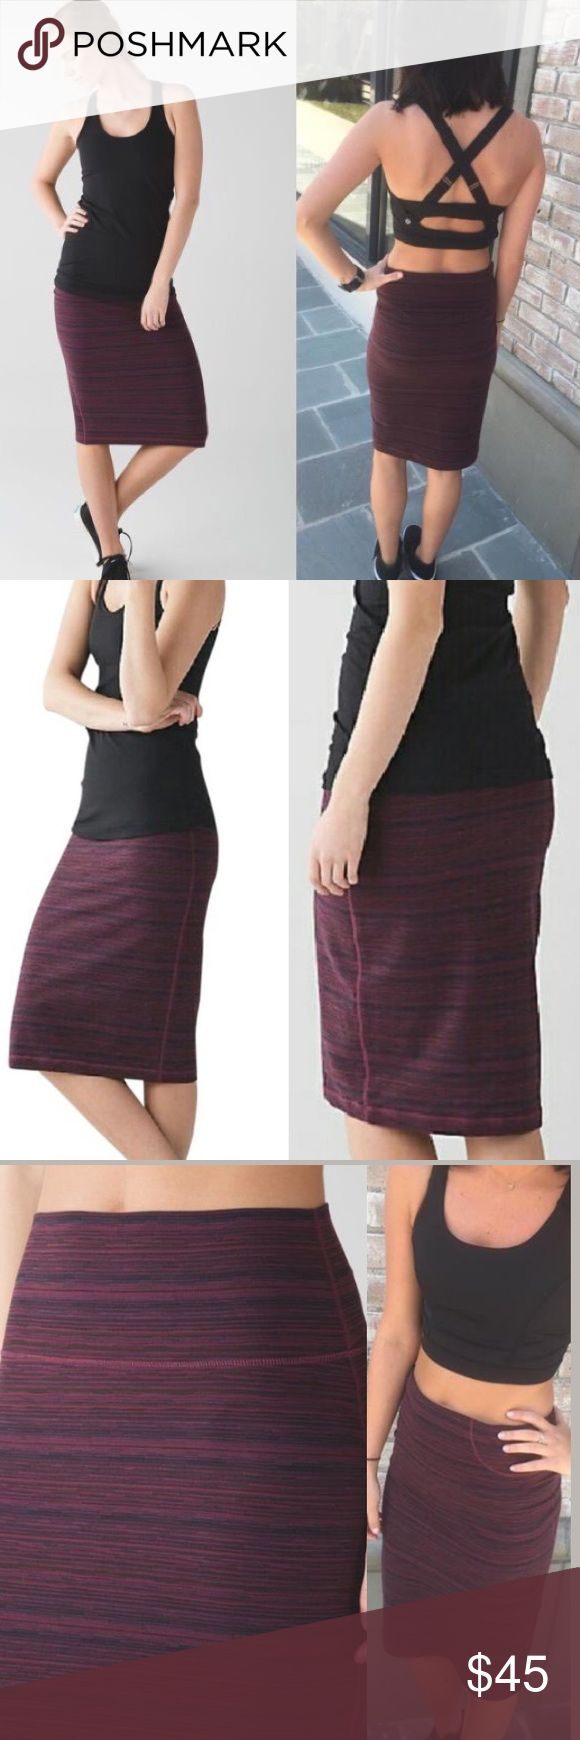 NWOT Bordeaux Tube and From Skirt Lululemon Sz 4 Comfortable, stretchy, figure flattering skirt with hidden pocket in waistband. Color is Cyber Red Grape Bordeaux Drama. New without tags. lululemon athletica Skirts Pencil